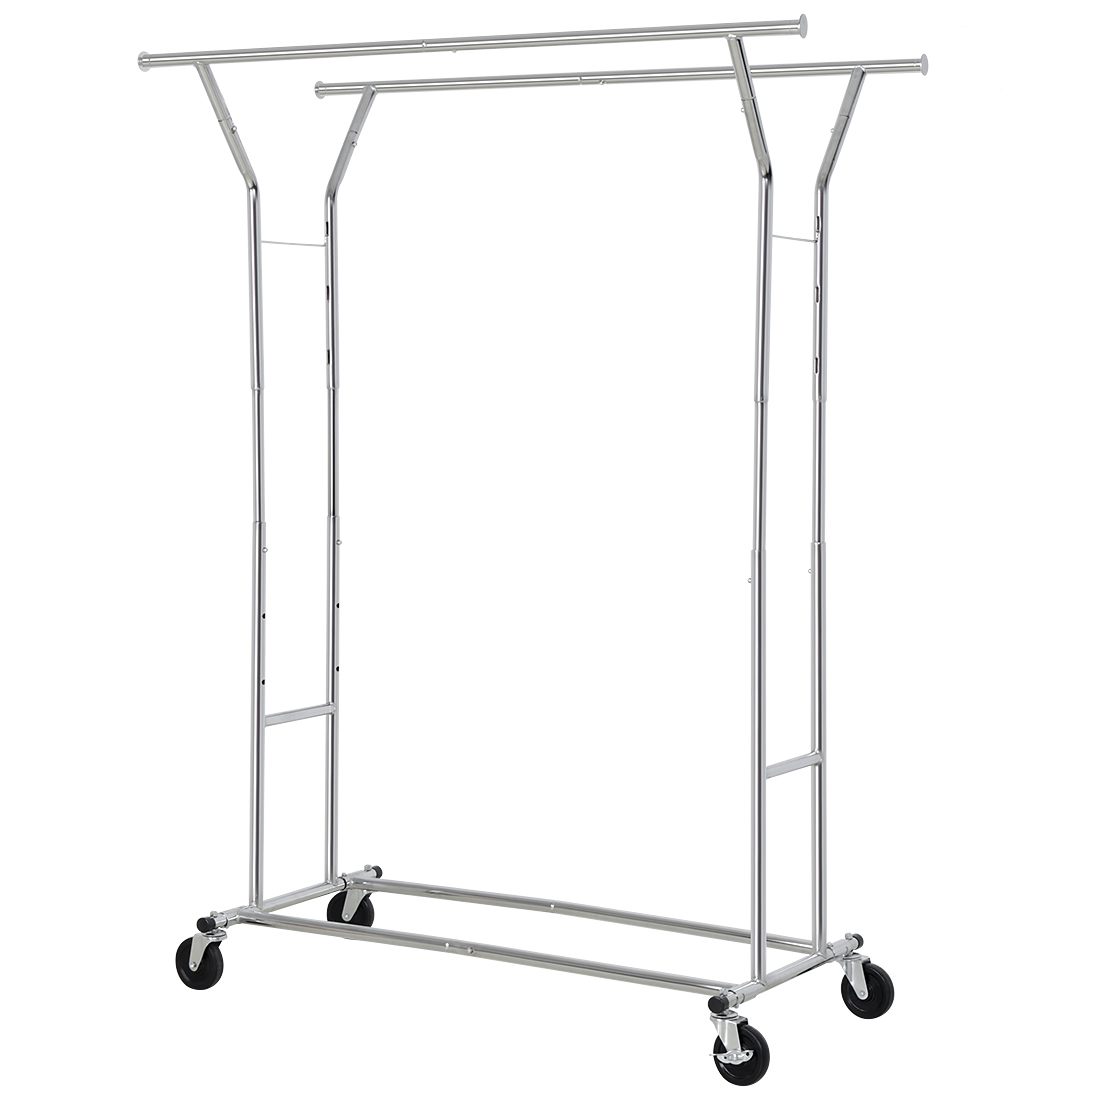 Double Rod Garment Rack with Adjustable Extendable Rail H...